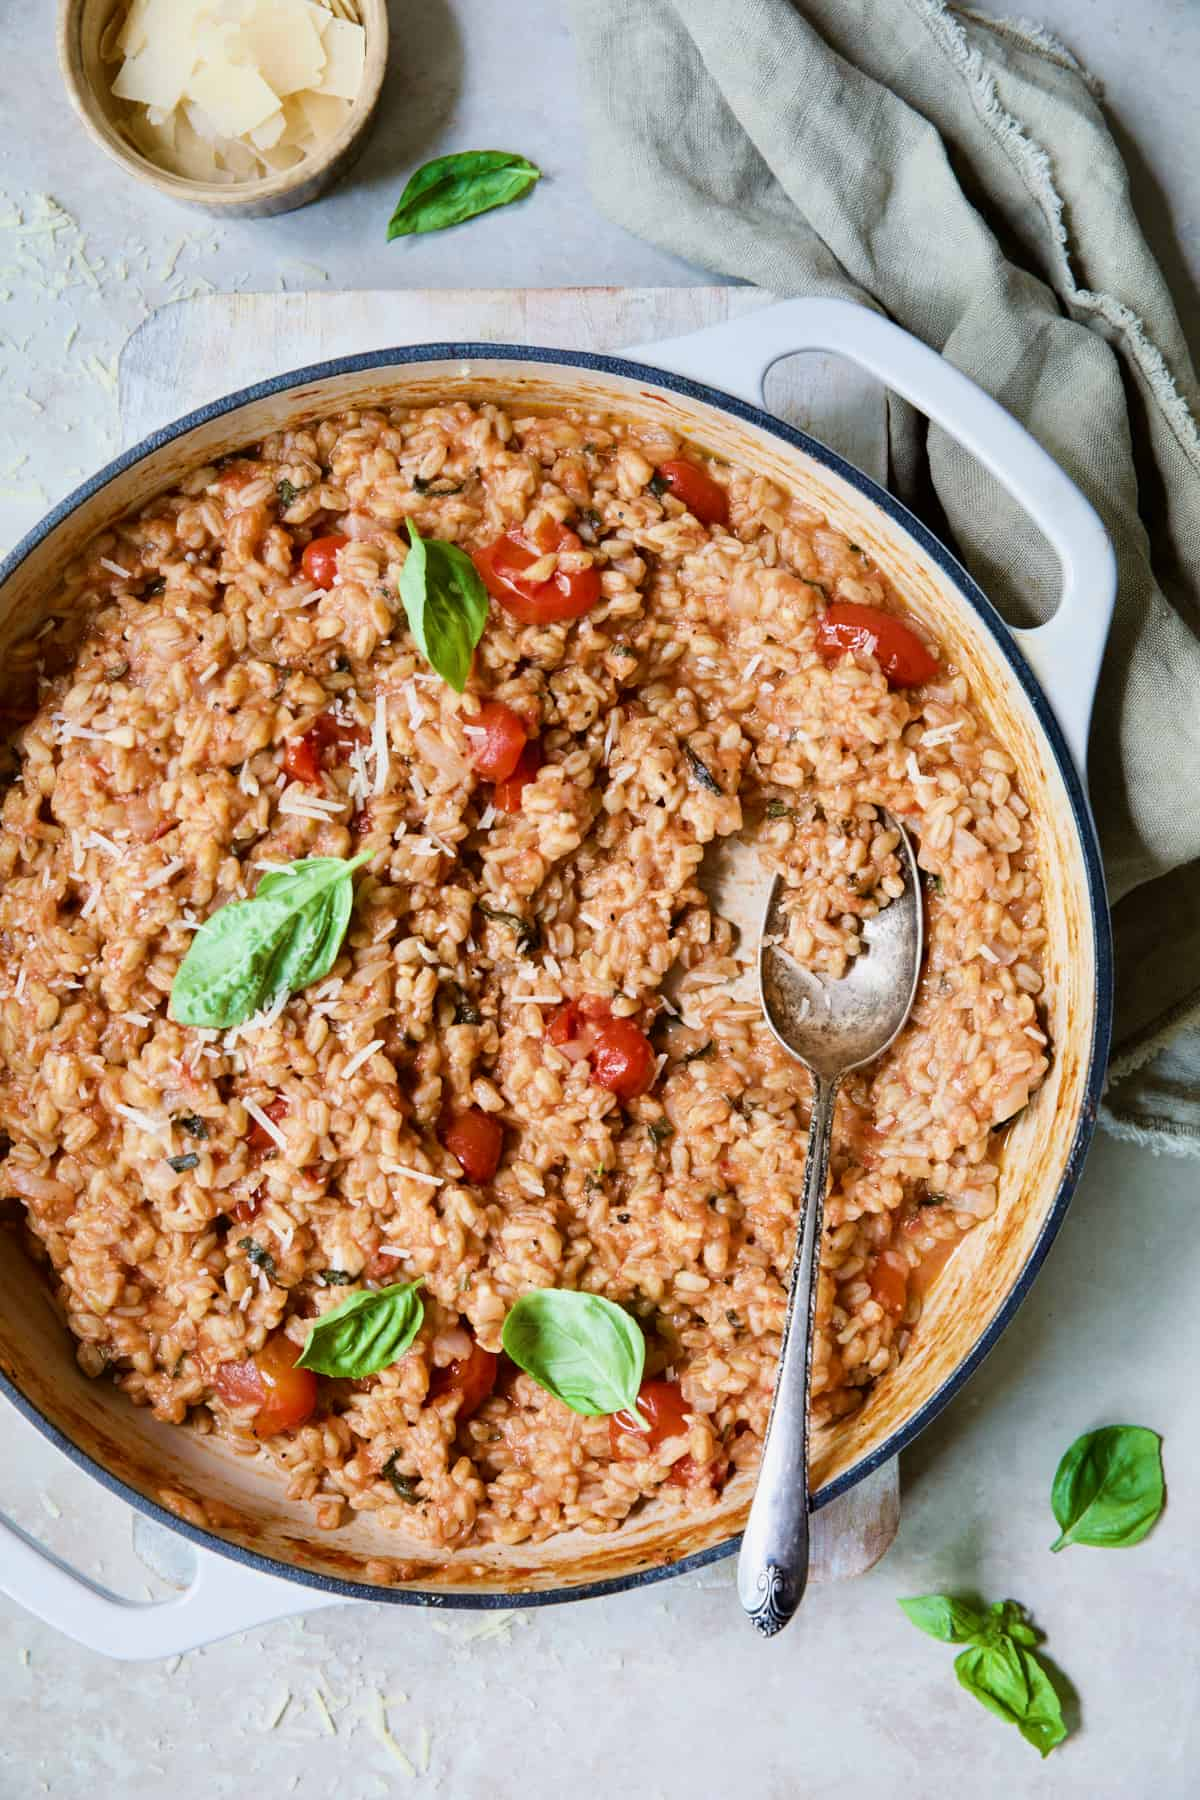 Tomato Farro Risotto with Basil and Parmesan in white enameled cast iron skillet garnished with fresh basil.